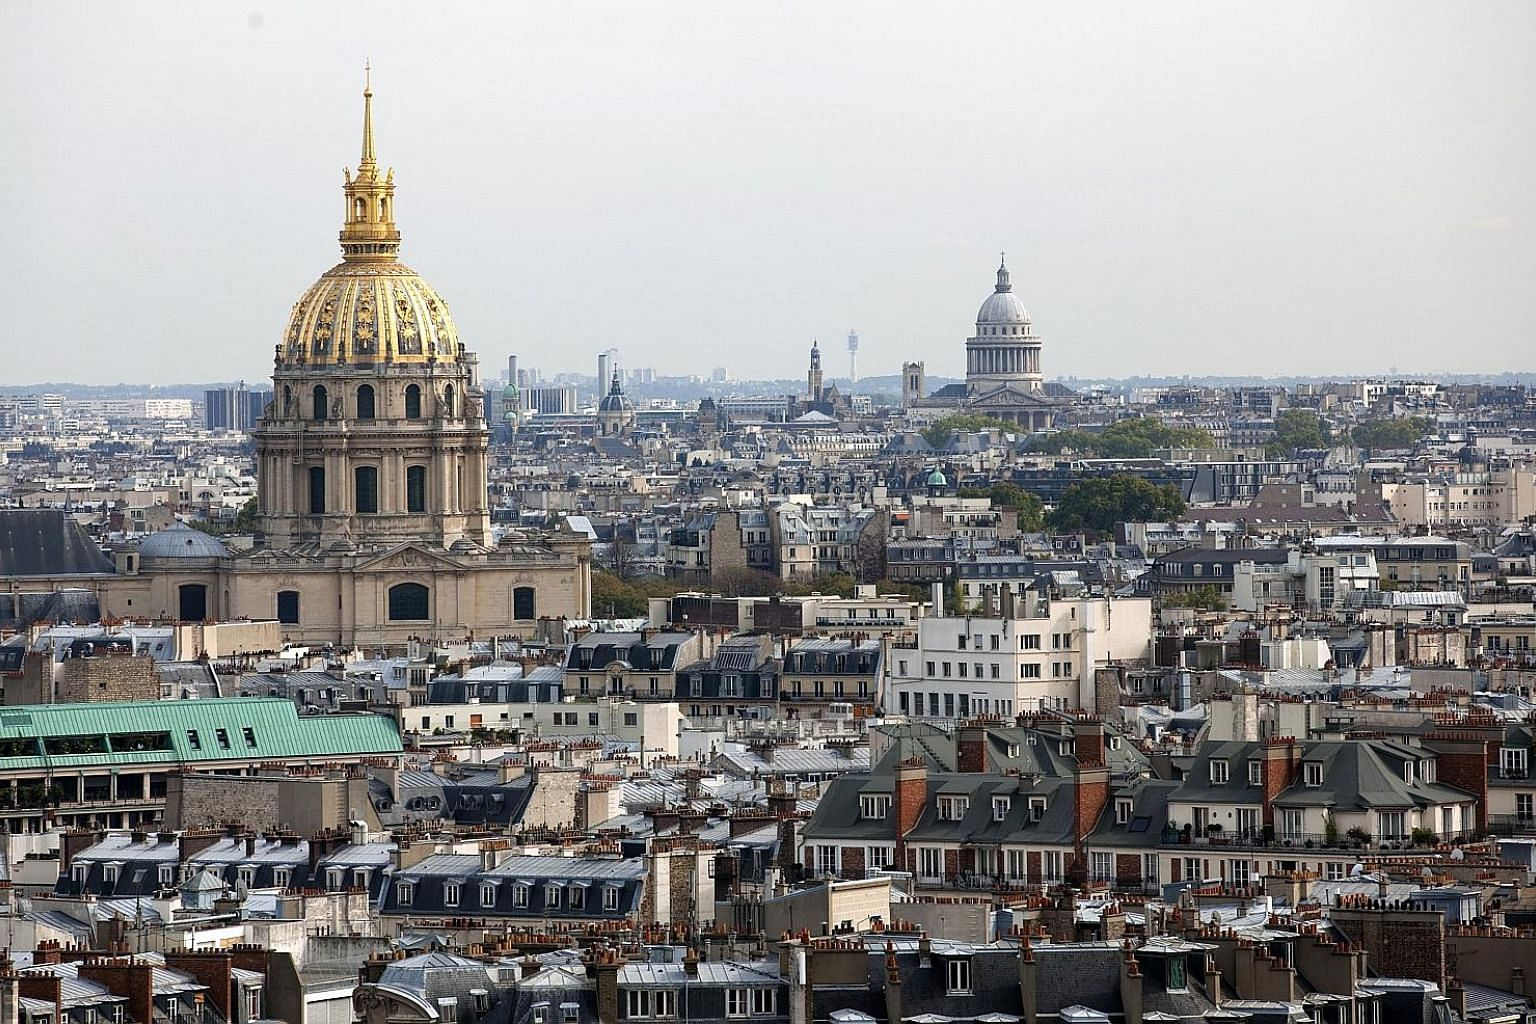 Paris roofscape. In European cities, getting permission to install a solar photovoltaic roof is hard because of aesthetic landscape constraints. An Italian company hopes to change that.